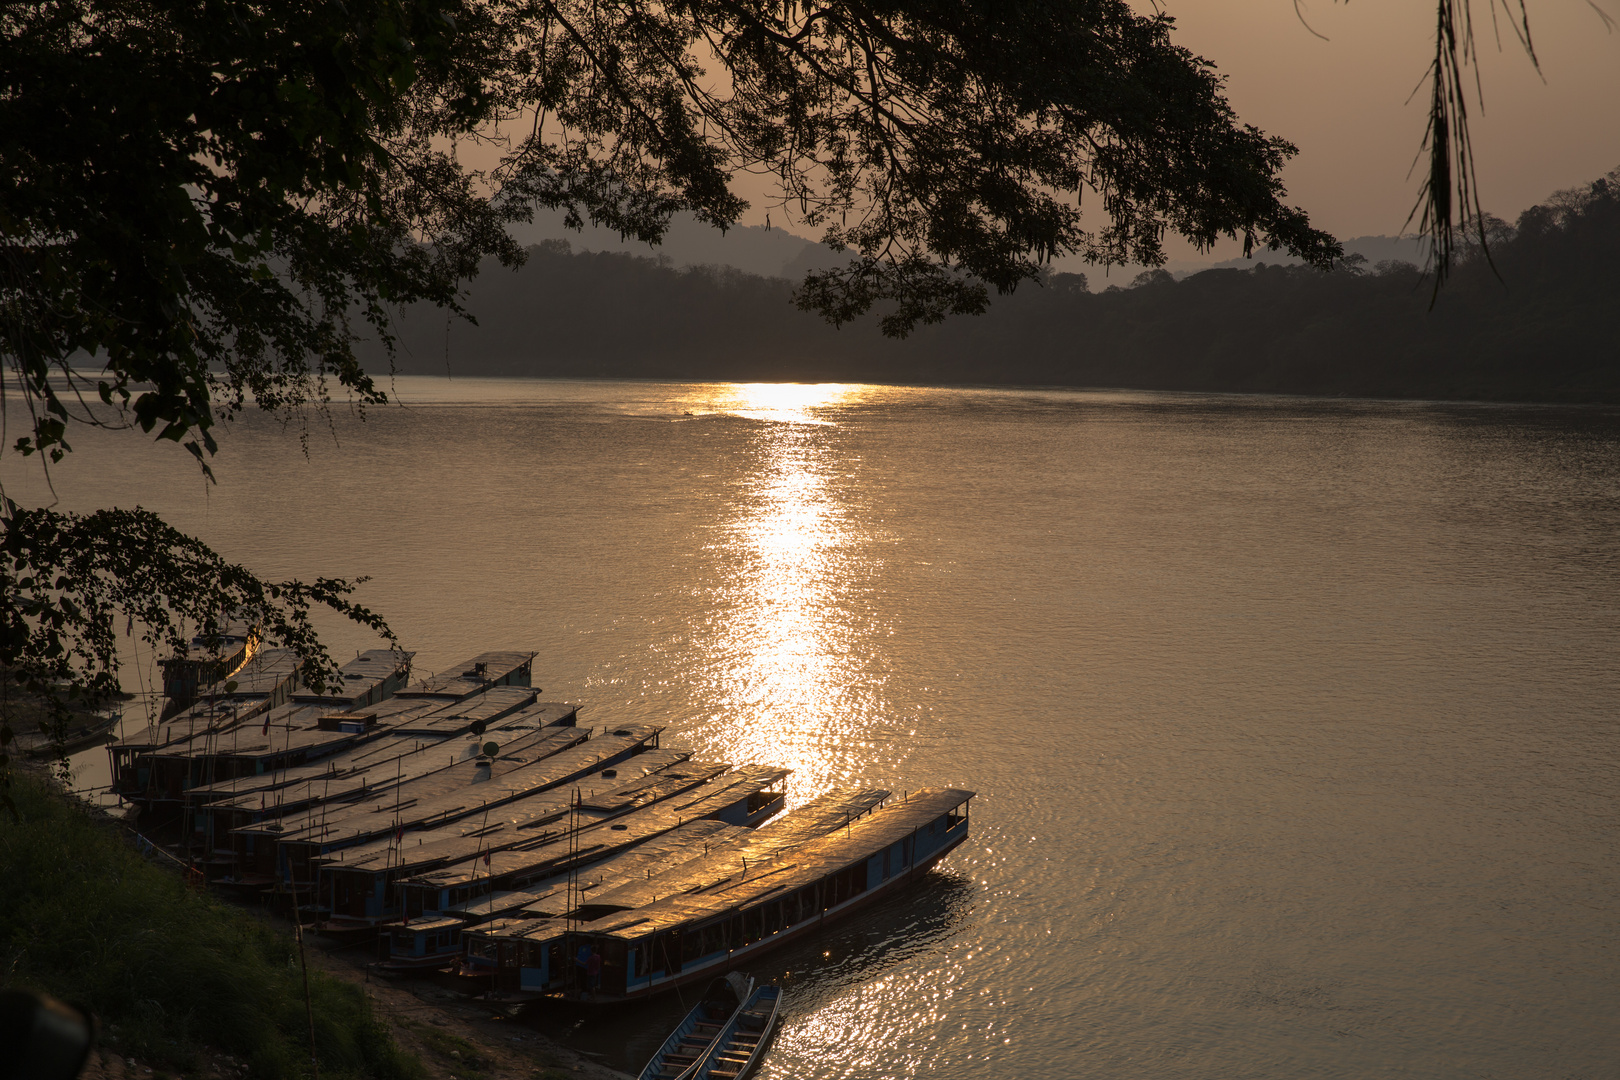 Sunset at the River Mekong 2